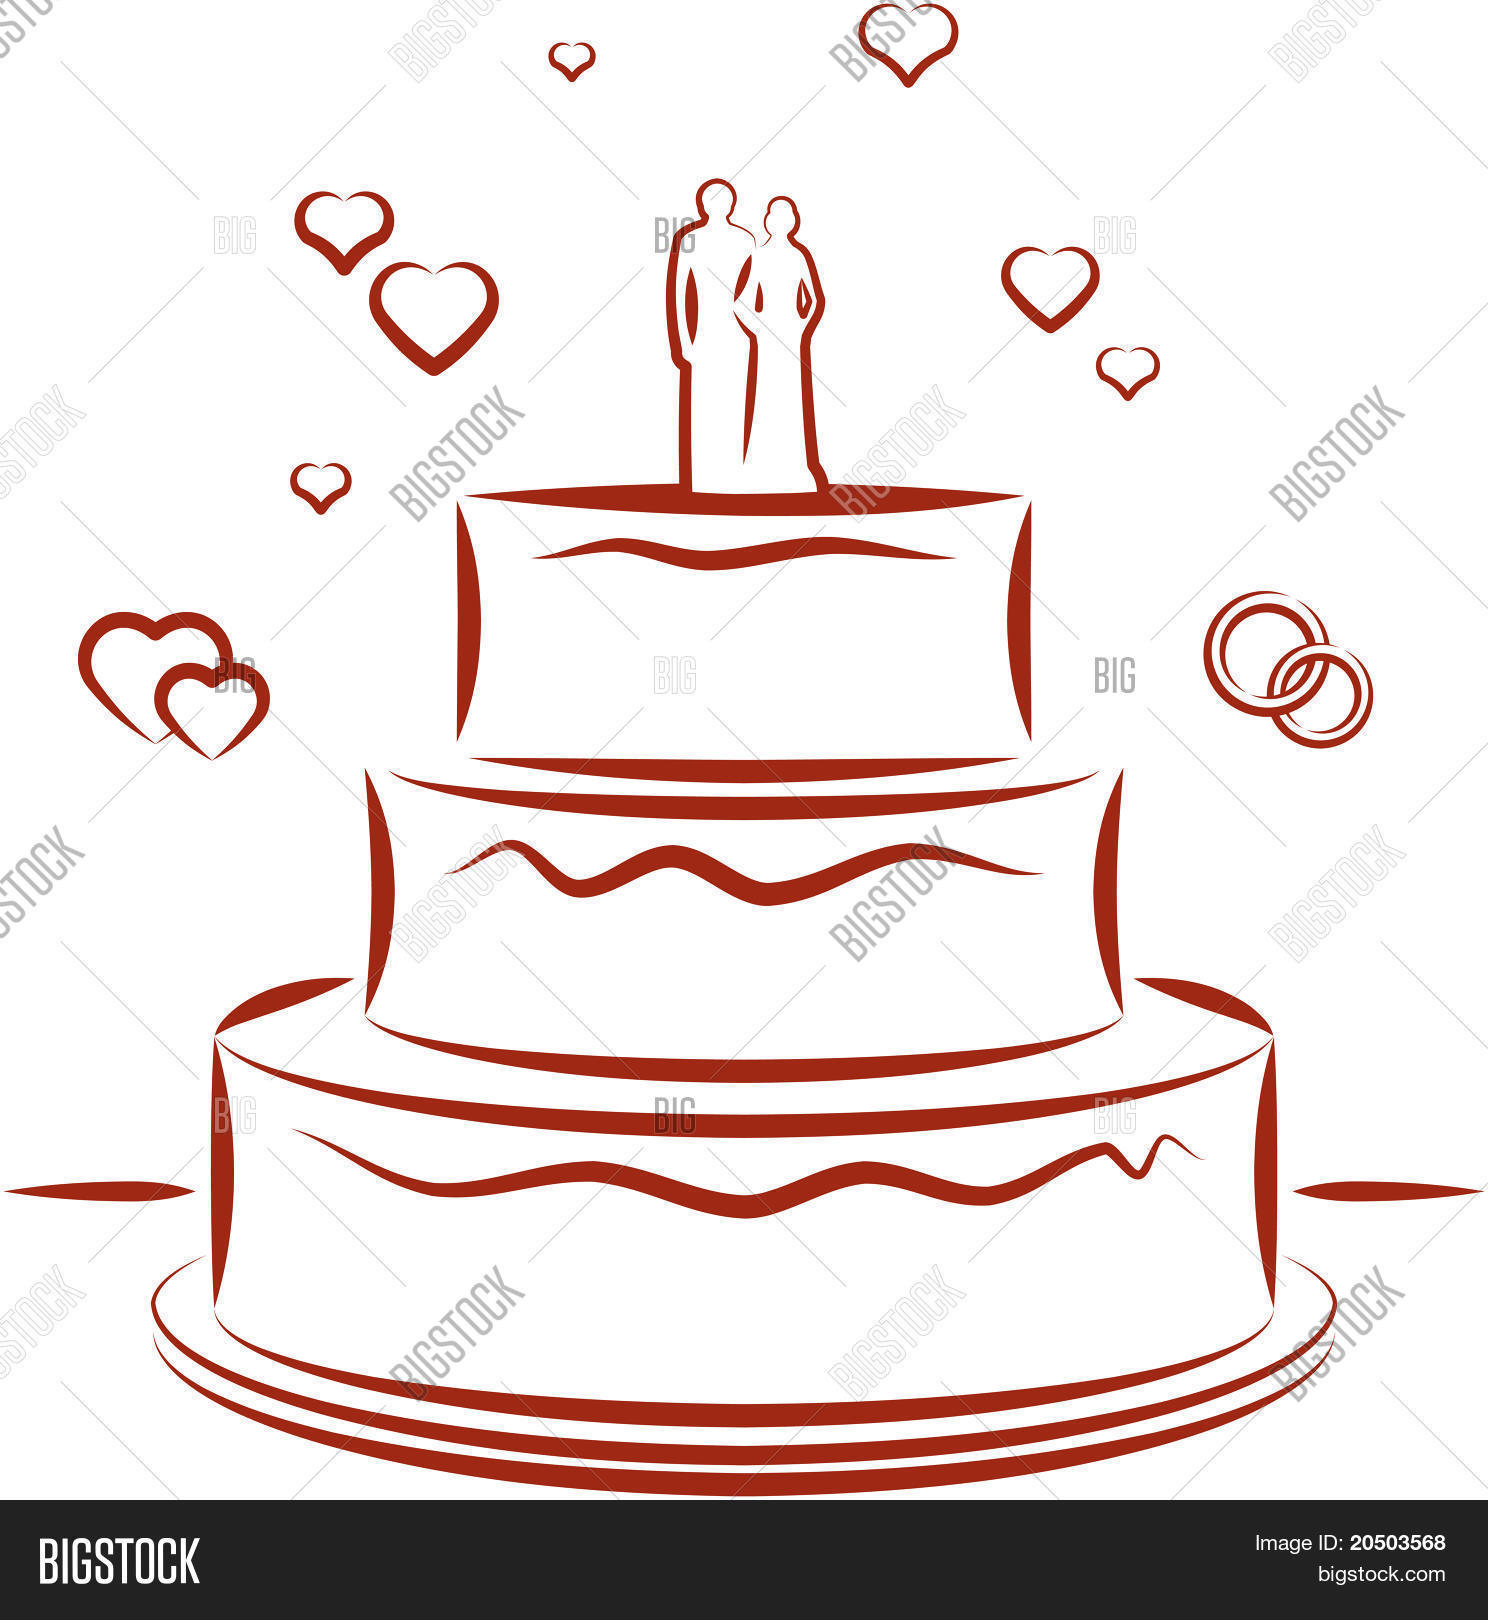 wedding cake vector wedding cake vector illustration vector amp photo bigstock 26758